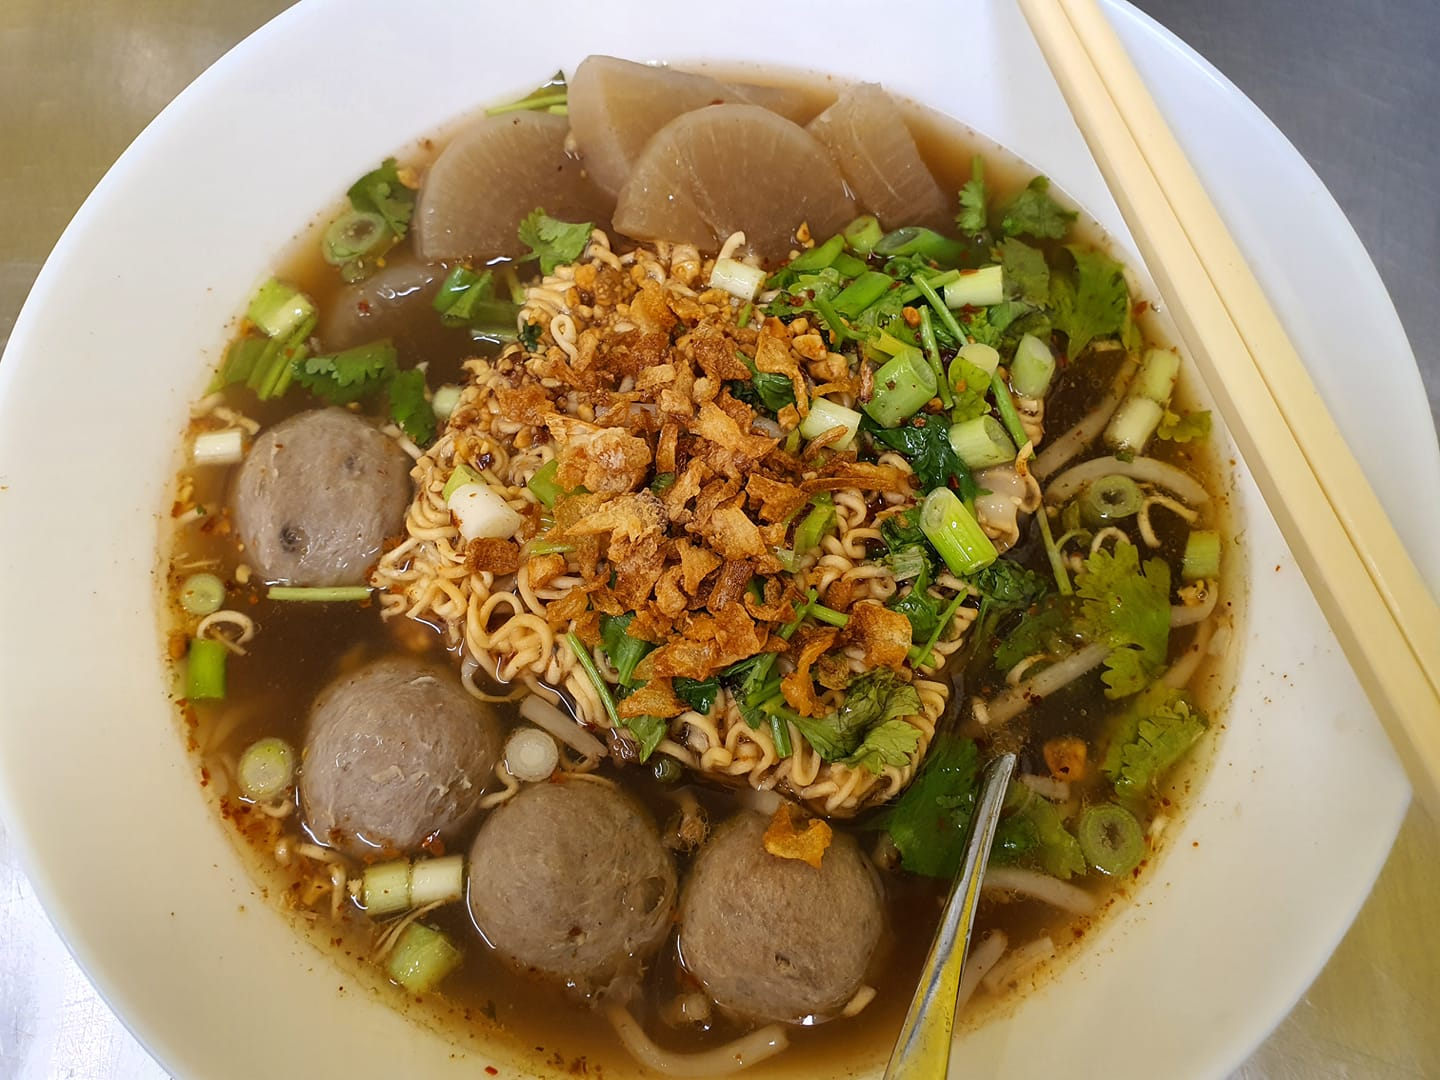 meatball noodle soup with veg spring onions chopsticks in broth